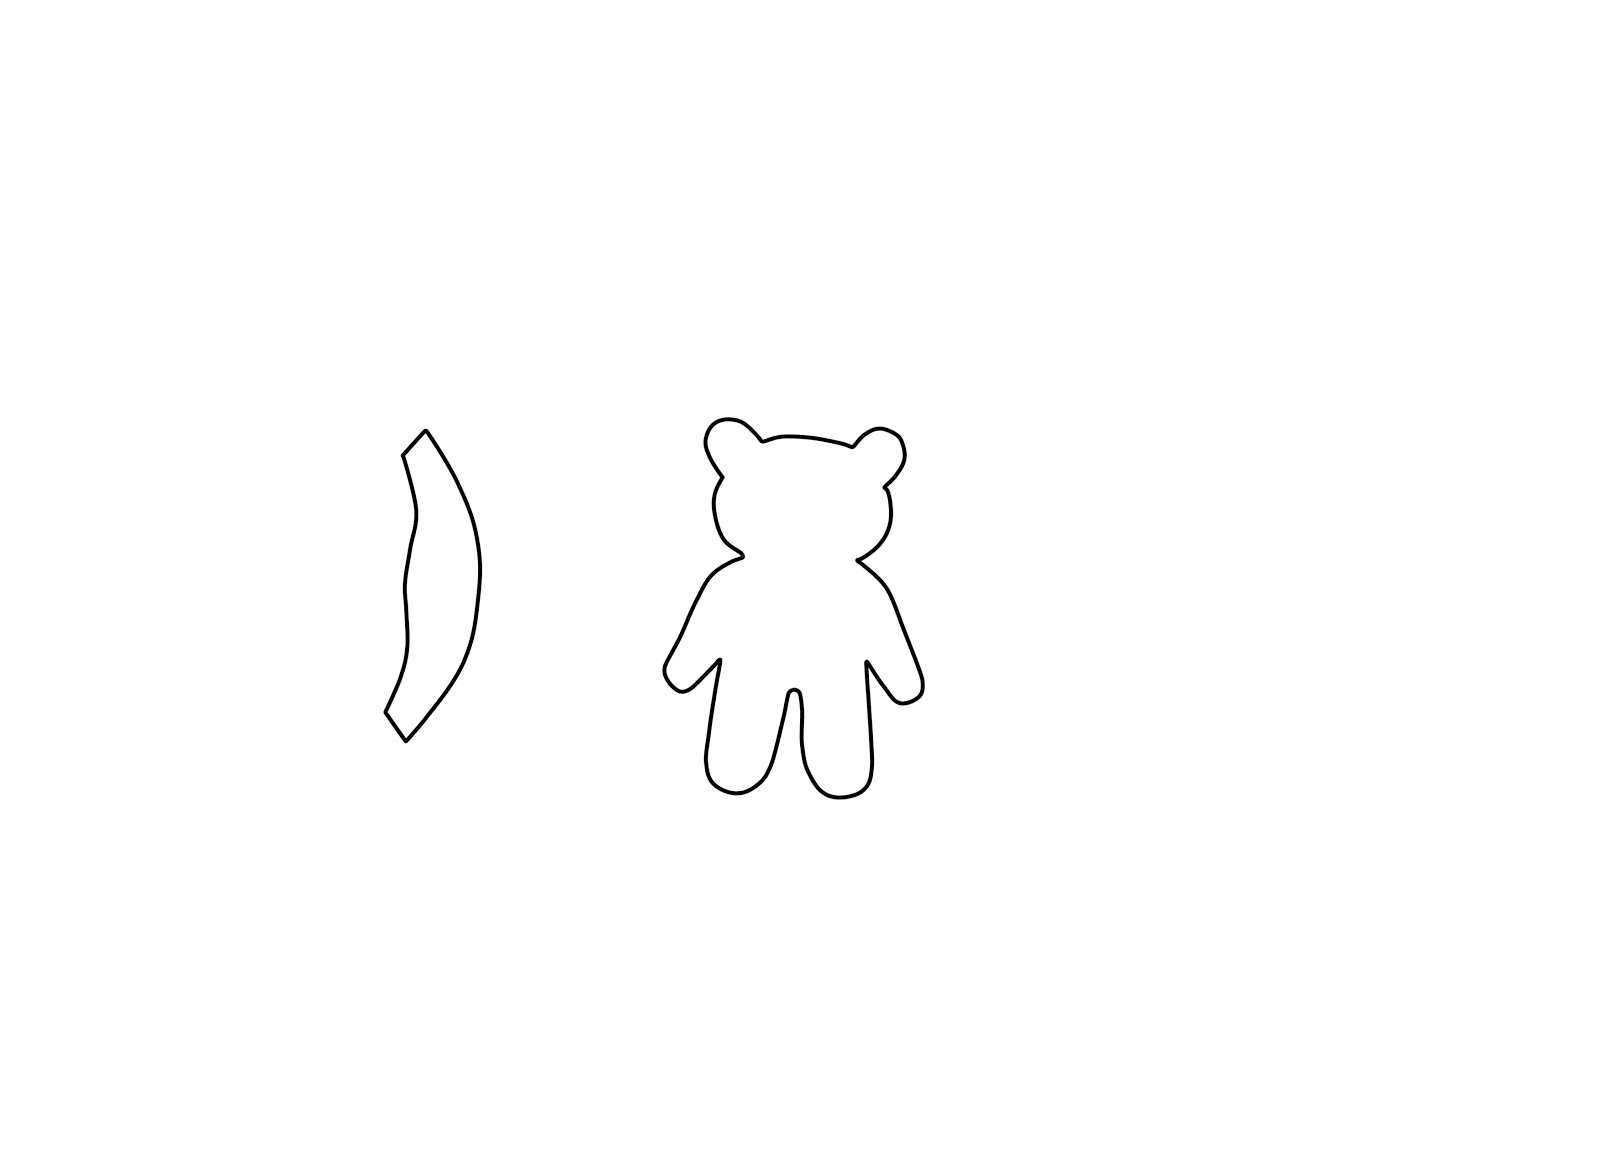 pudsey bear colouring pictures to print pudsey bear template sketch coloring page pictures print to pudsey bear colouring